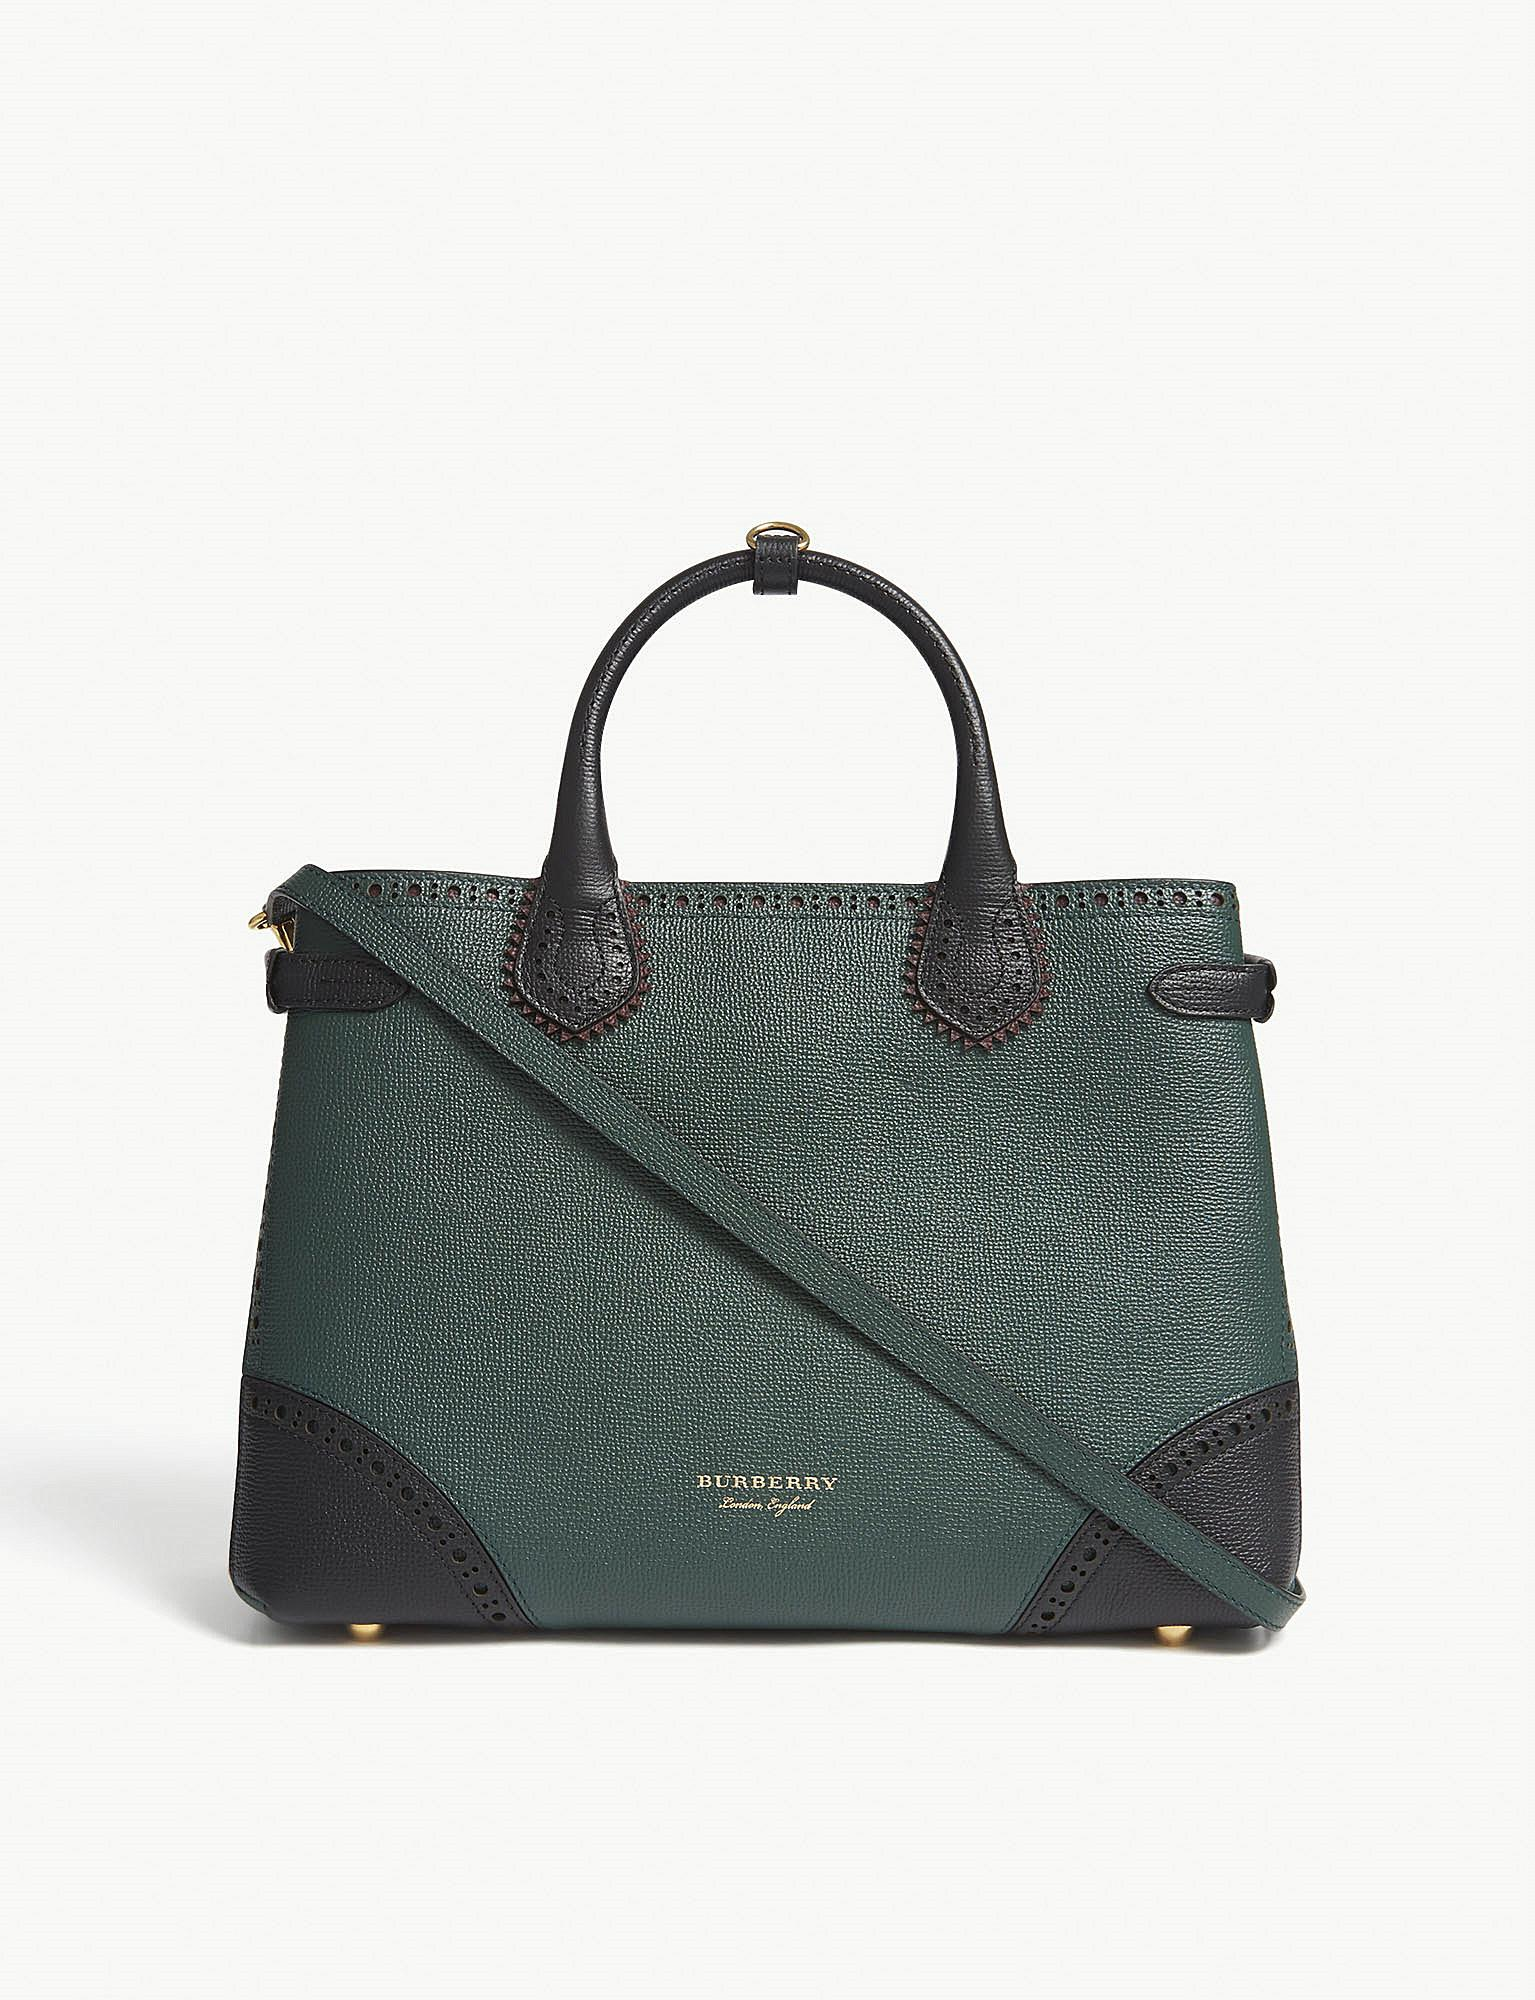 c6985d4ffd95 Burberry Banner Brogue Medium Leather Tote in Green - Lyst